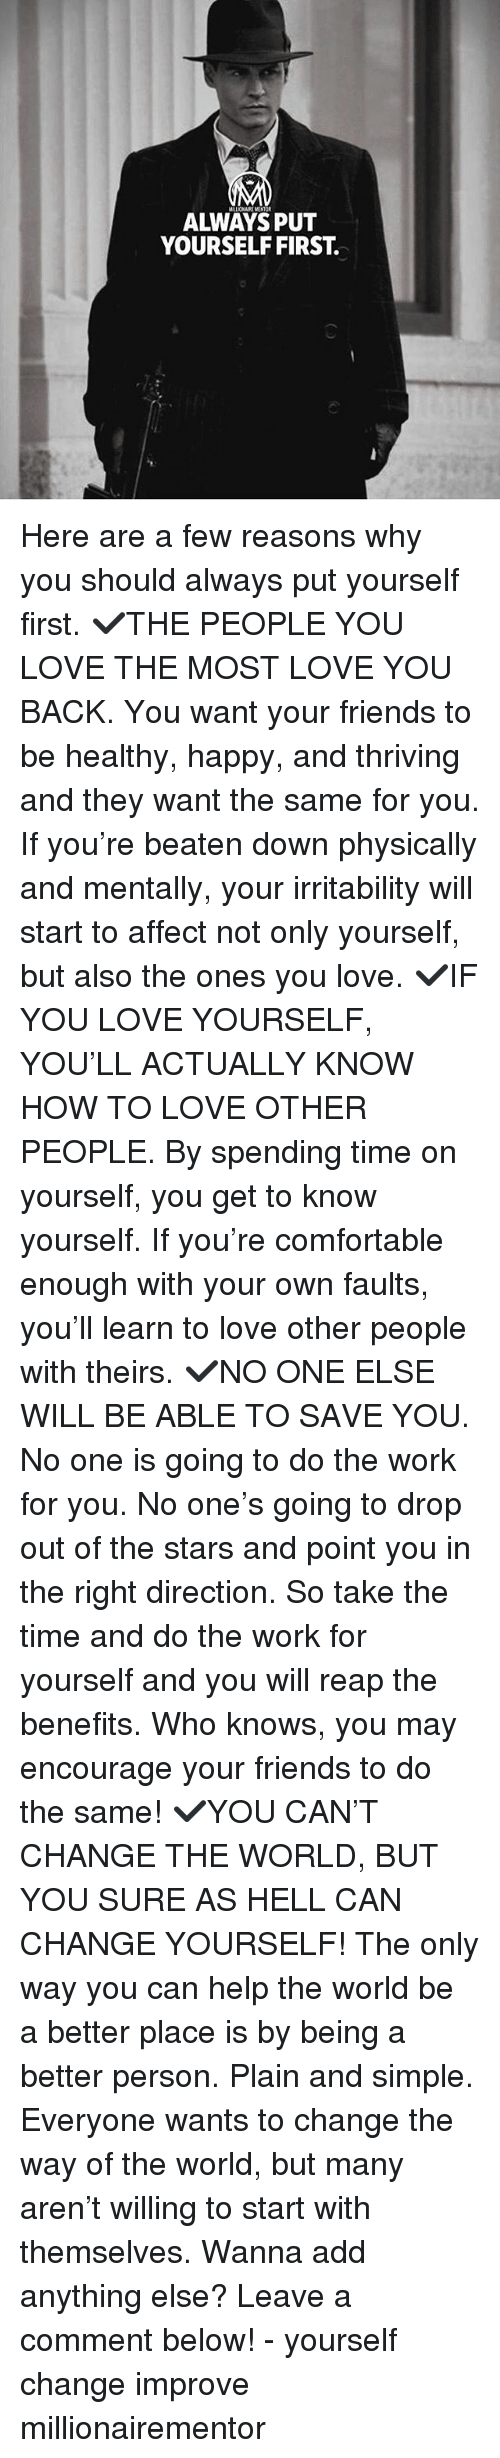 Comfortable, Friends, and Know Yourself: ALWAYS PUT  YOURSELF FIRST Here are a few reasons why you should always put yourself first. ✔️THE PEOPLE YOU LOVE THE MOST LOVE YOU BACK. You want your friends to be healthy, happy, and thriving and they want the same for you. If you're beaten down physically and mentally, your irritability will start to affect not only yourself, but also the ones you love. ✔️IF YOU LOVE YOURSELF, YOU'LL ACTUALLY KNOW HOW TO LOVE OTHER PEOPLE. By spending time on yourself, you get to know yourself. If you're comfortable enough with your own faults, you'll learn to love other people with theirs. ✔️NO ONE ELSE WILL BE ABLE TO SAVE YOU. No one is going to do the work for you. No one's going to drop out of the stars and point you in the right direction. So take the time and do the work for yourself and you will reap the benefits. Who knows, you may encourage your friends to do the same! ✔️YOU CAN'T CHANGE THE WORLD, BUT YOU SURE AS HELL CAN CHANGE YOURSELF! The only way you can help the world be a better place is by being a better person. Plain and simple. Everyone wants to change the way of the world, but many aren't willing to start with themselves. Wanna add anything else? Leave a comment below! - yourself change improve millionairementor